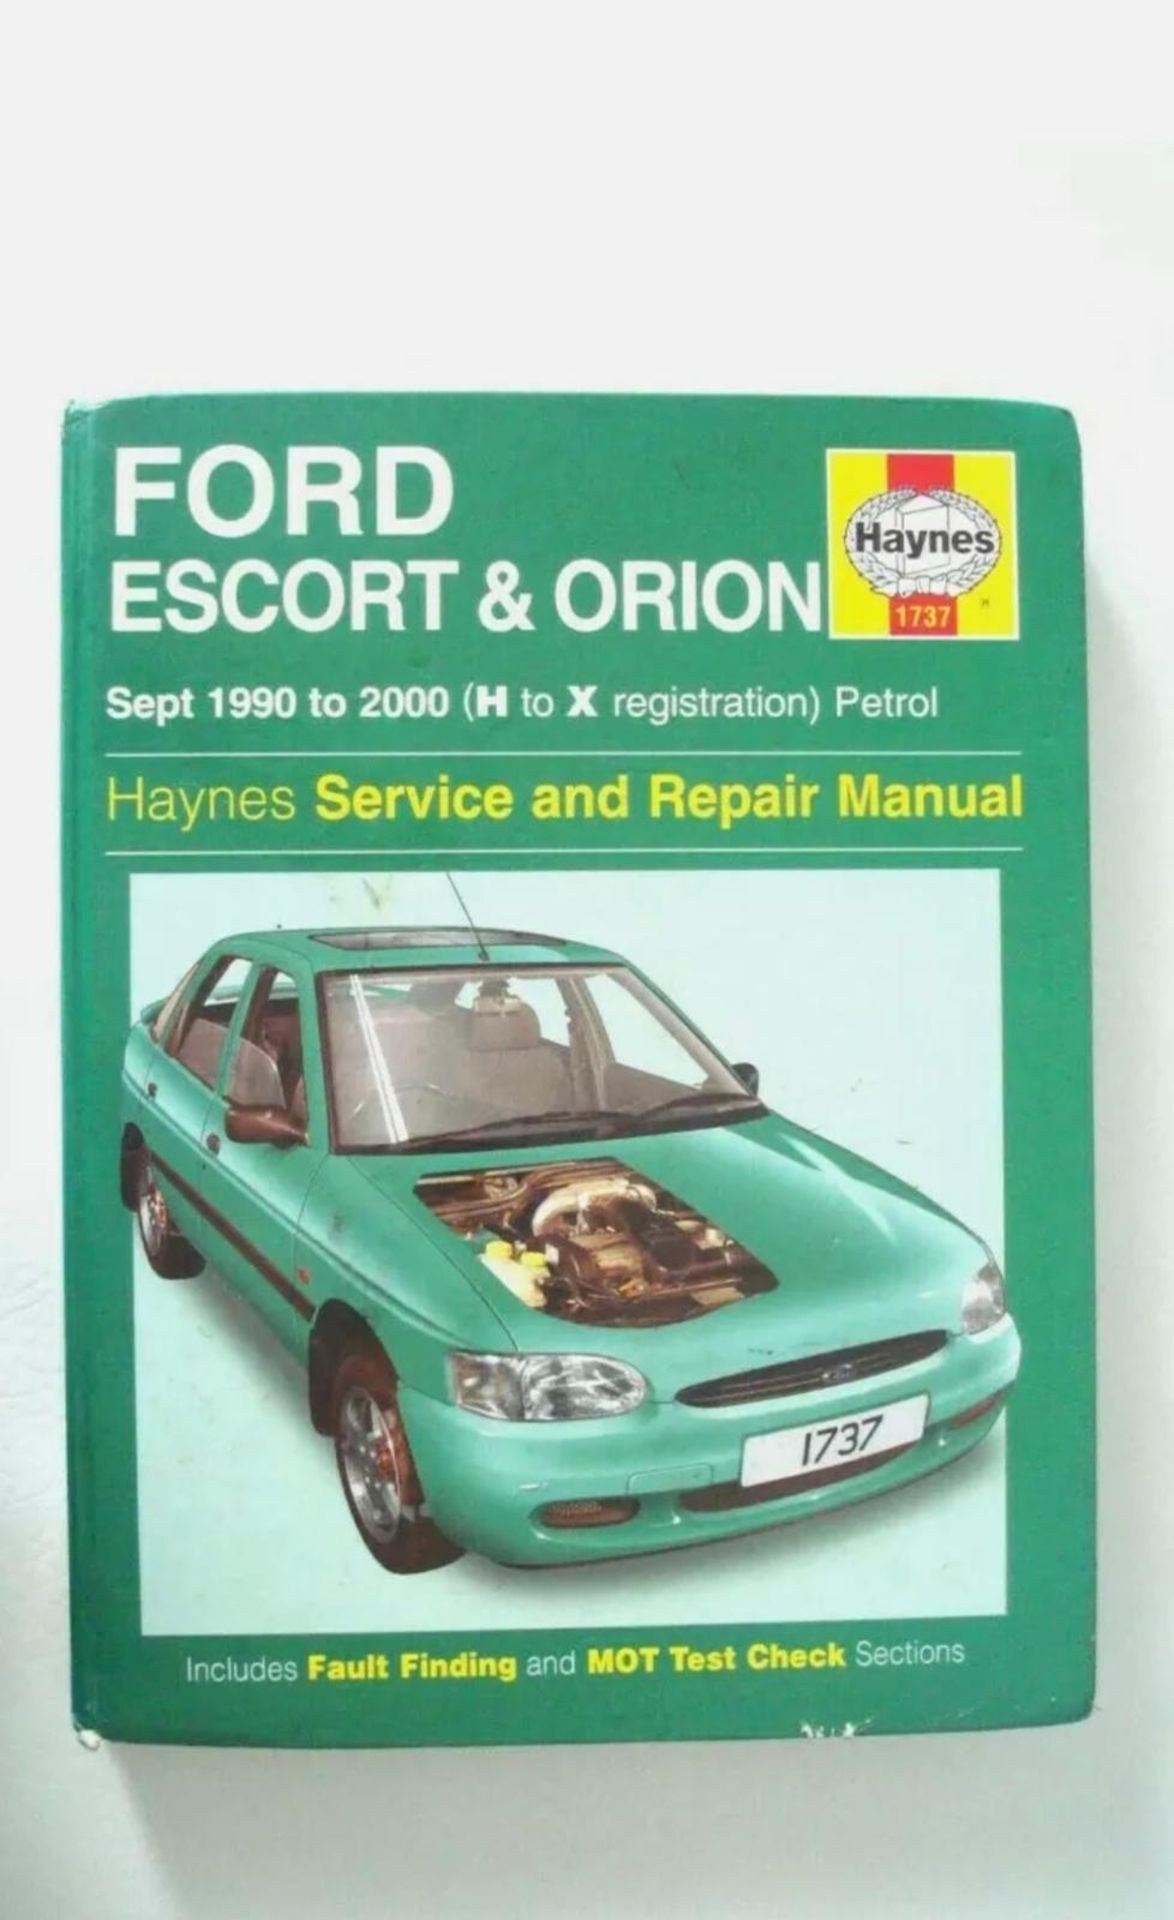 1992 FORD ORION LX AUTO, GREY, PETROL, AUTO VARIABLE 1 GEARS, 4 PREVIOUS KEEPERS, NO VAT - Image 6 of 8